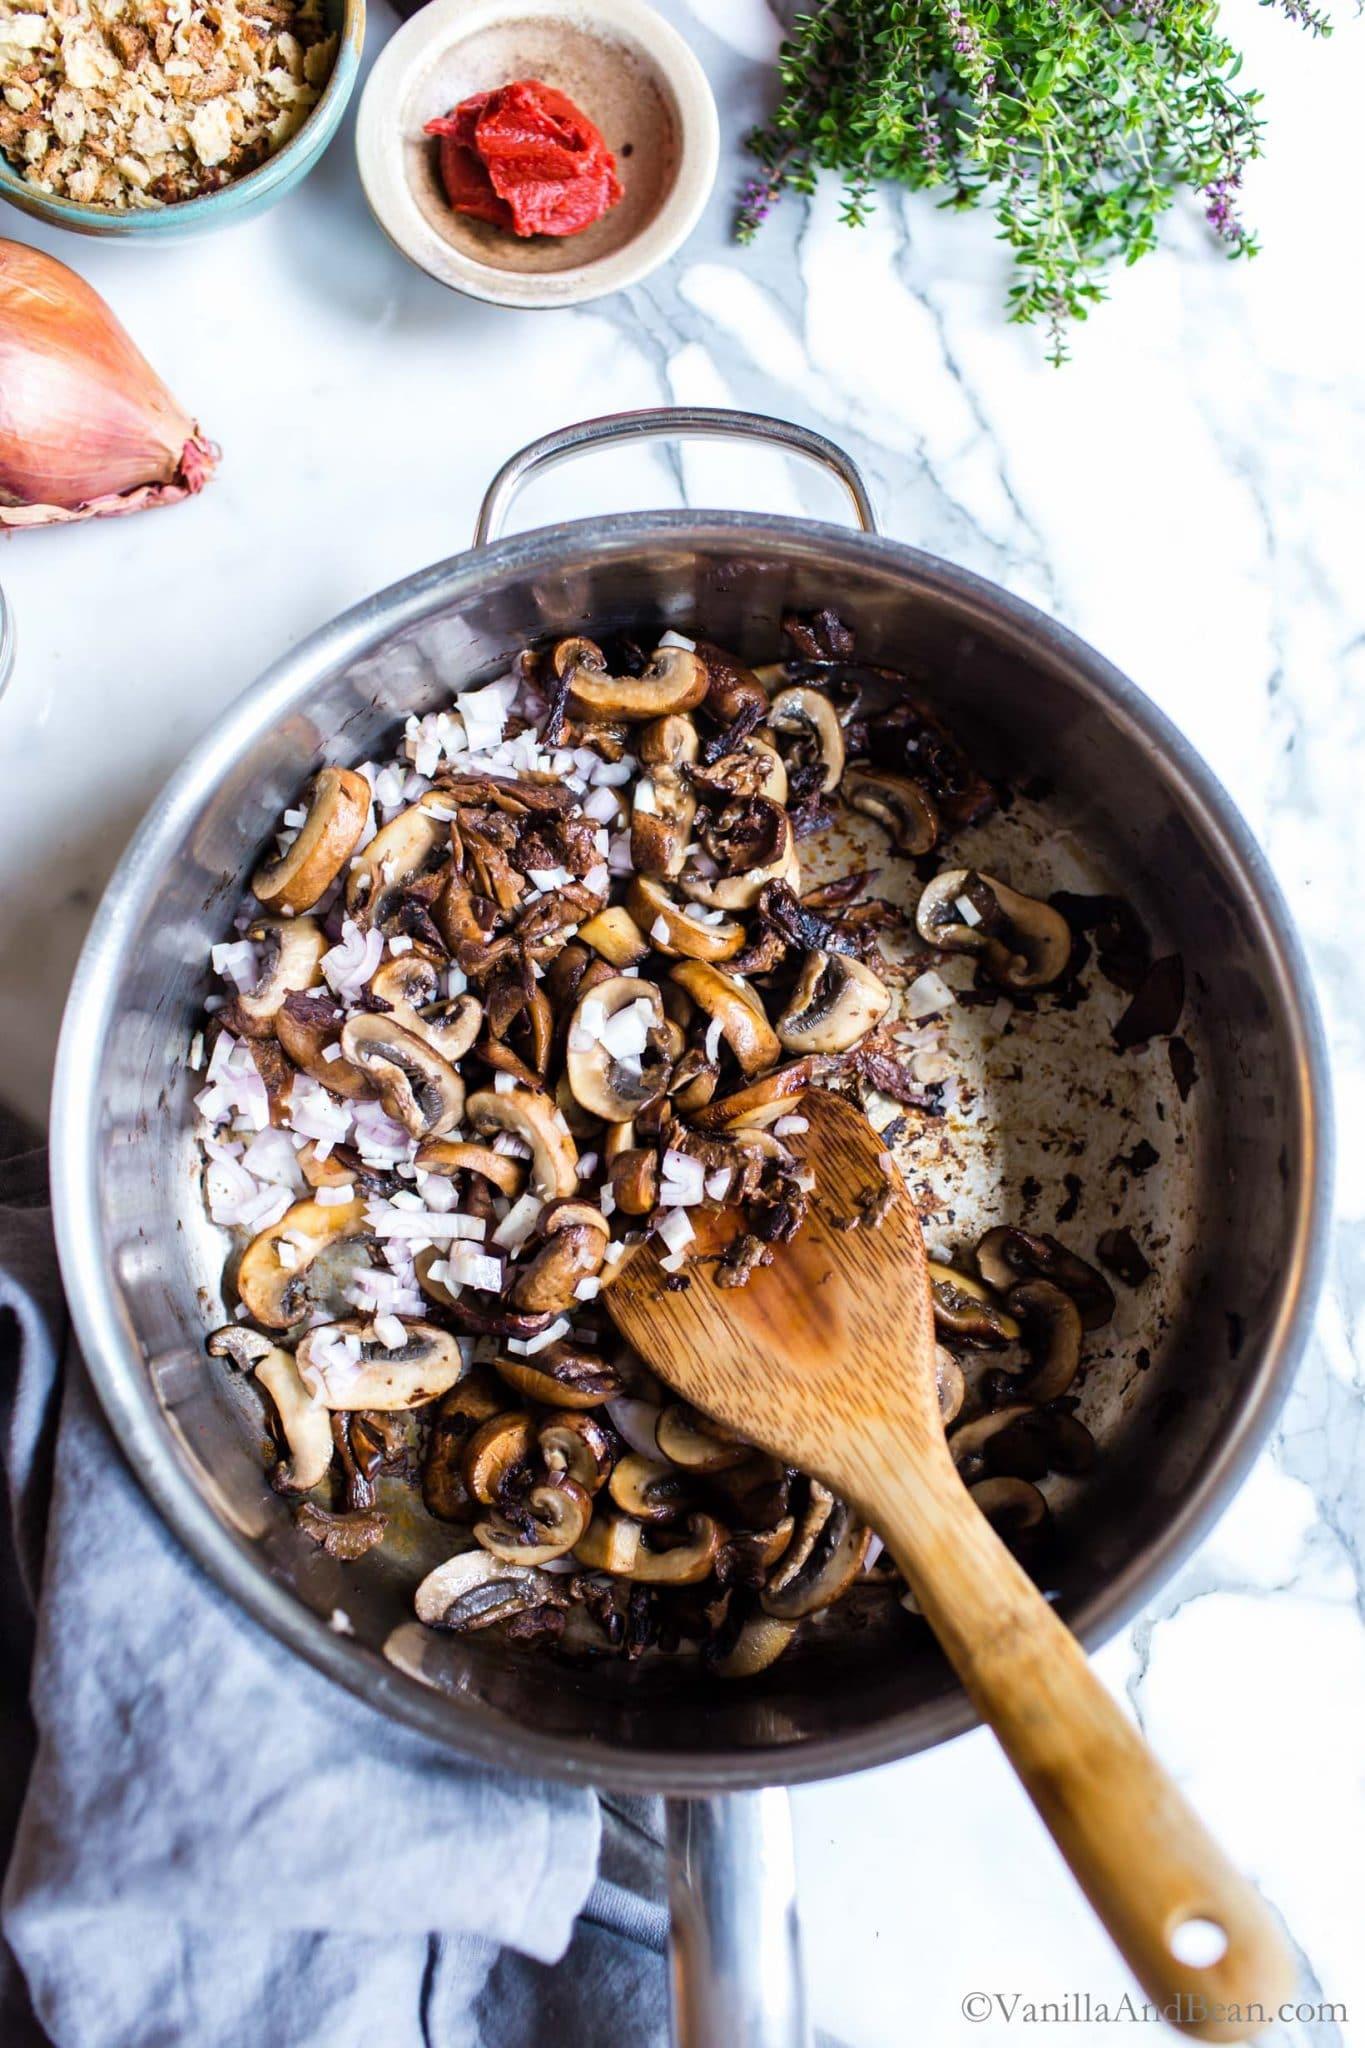 Mushrooms and shallots in a saute' pan.